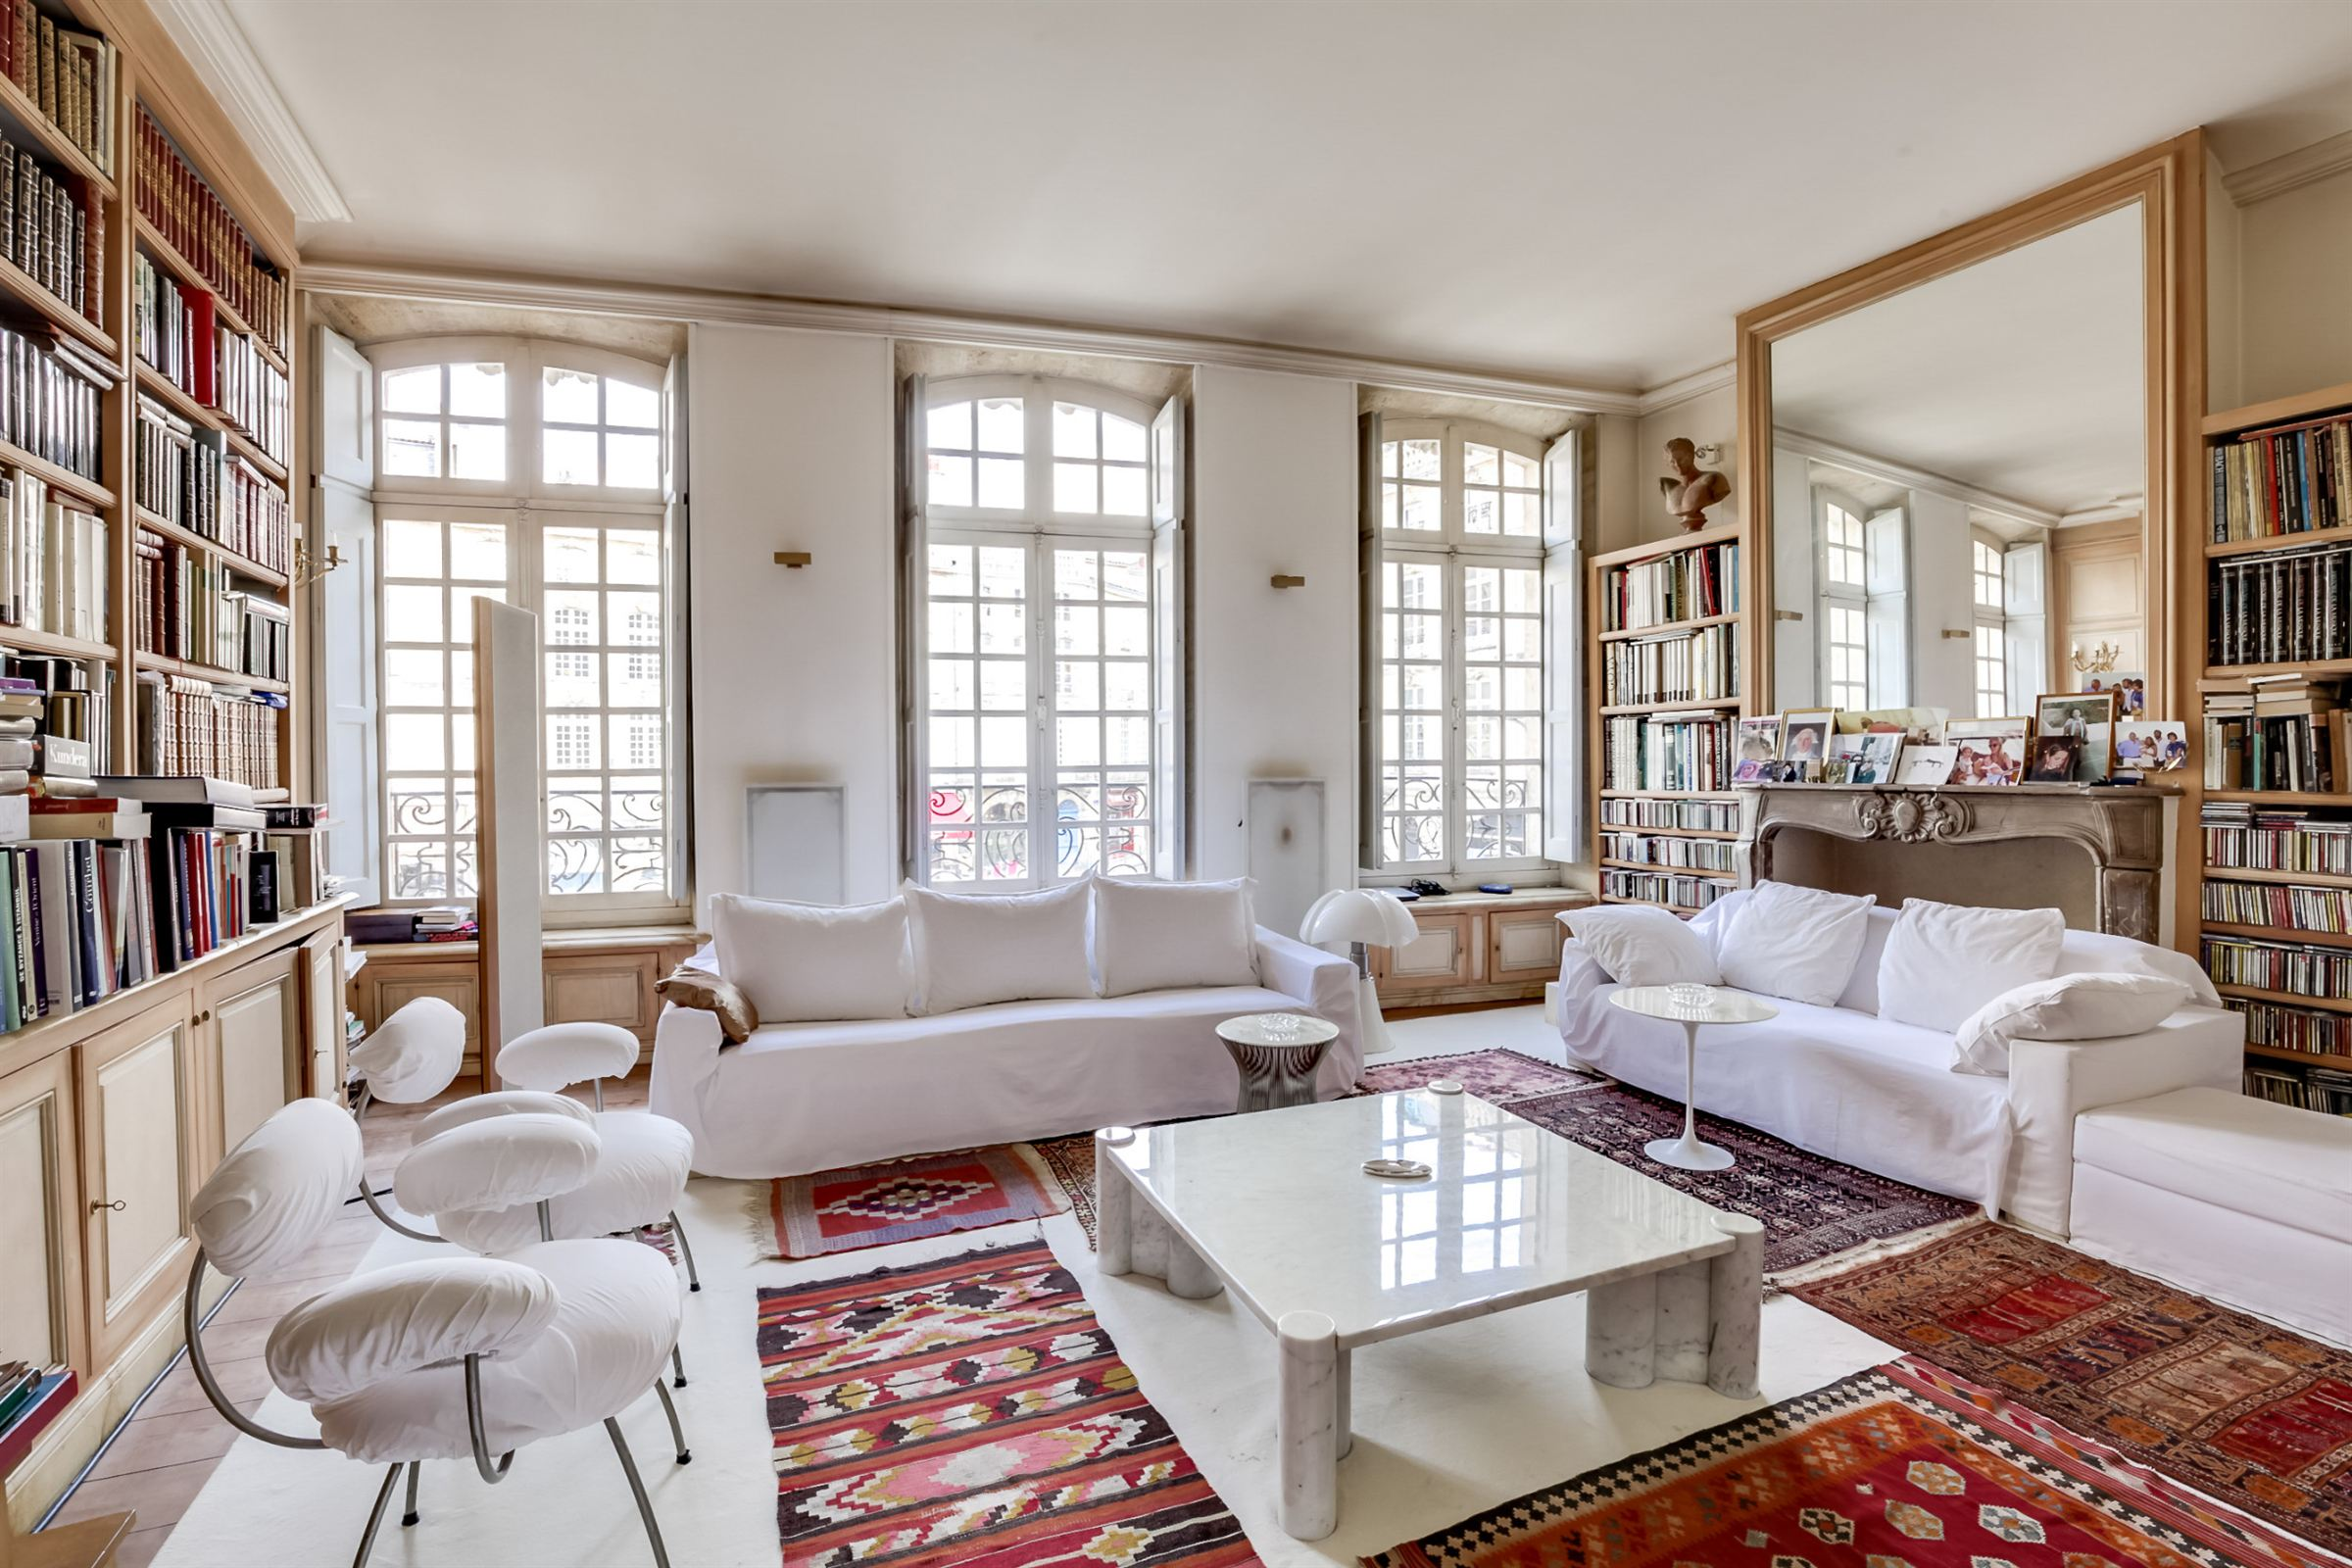 Condomínio para Venda às BORDEAUX - EXCLUSIVE PRIVATE LUXURY TOWNHOUSE IN THE HISTORIC DISTRICT Bordeaux, Aquitaine, 33000 França